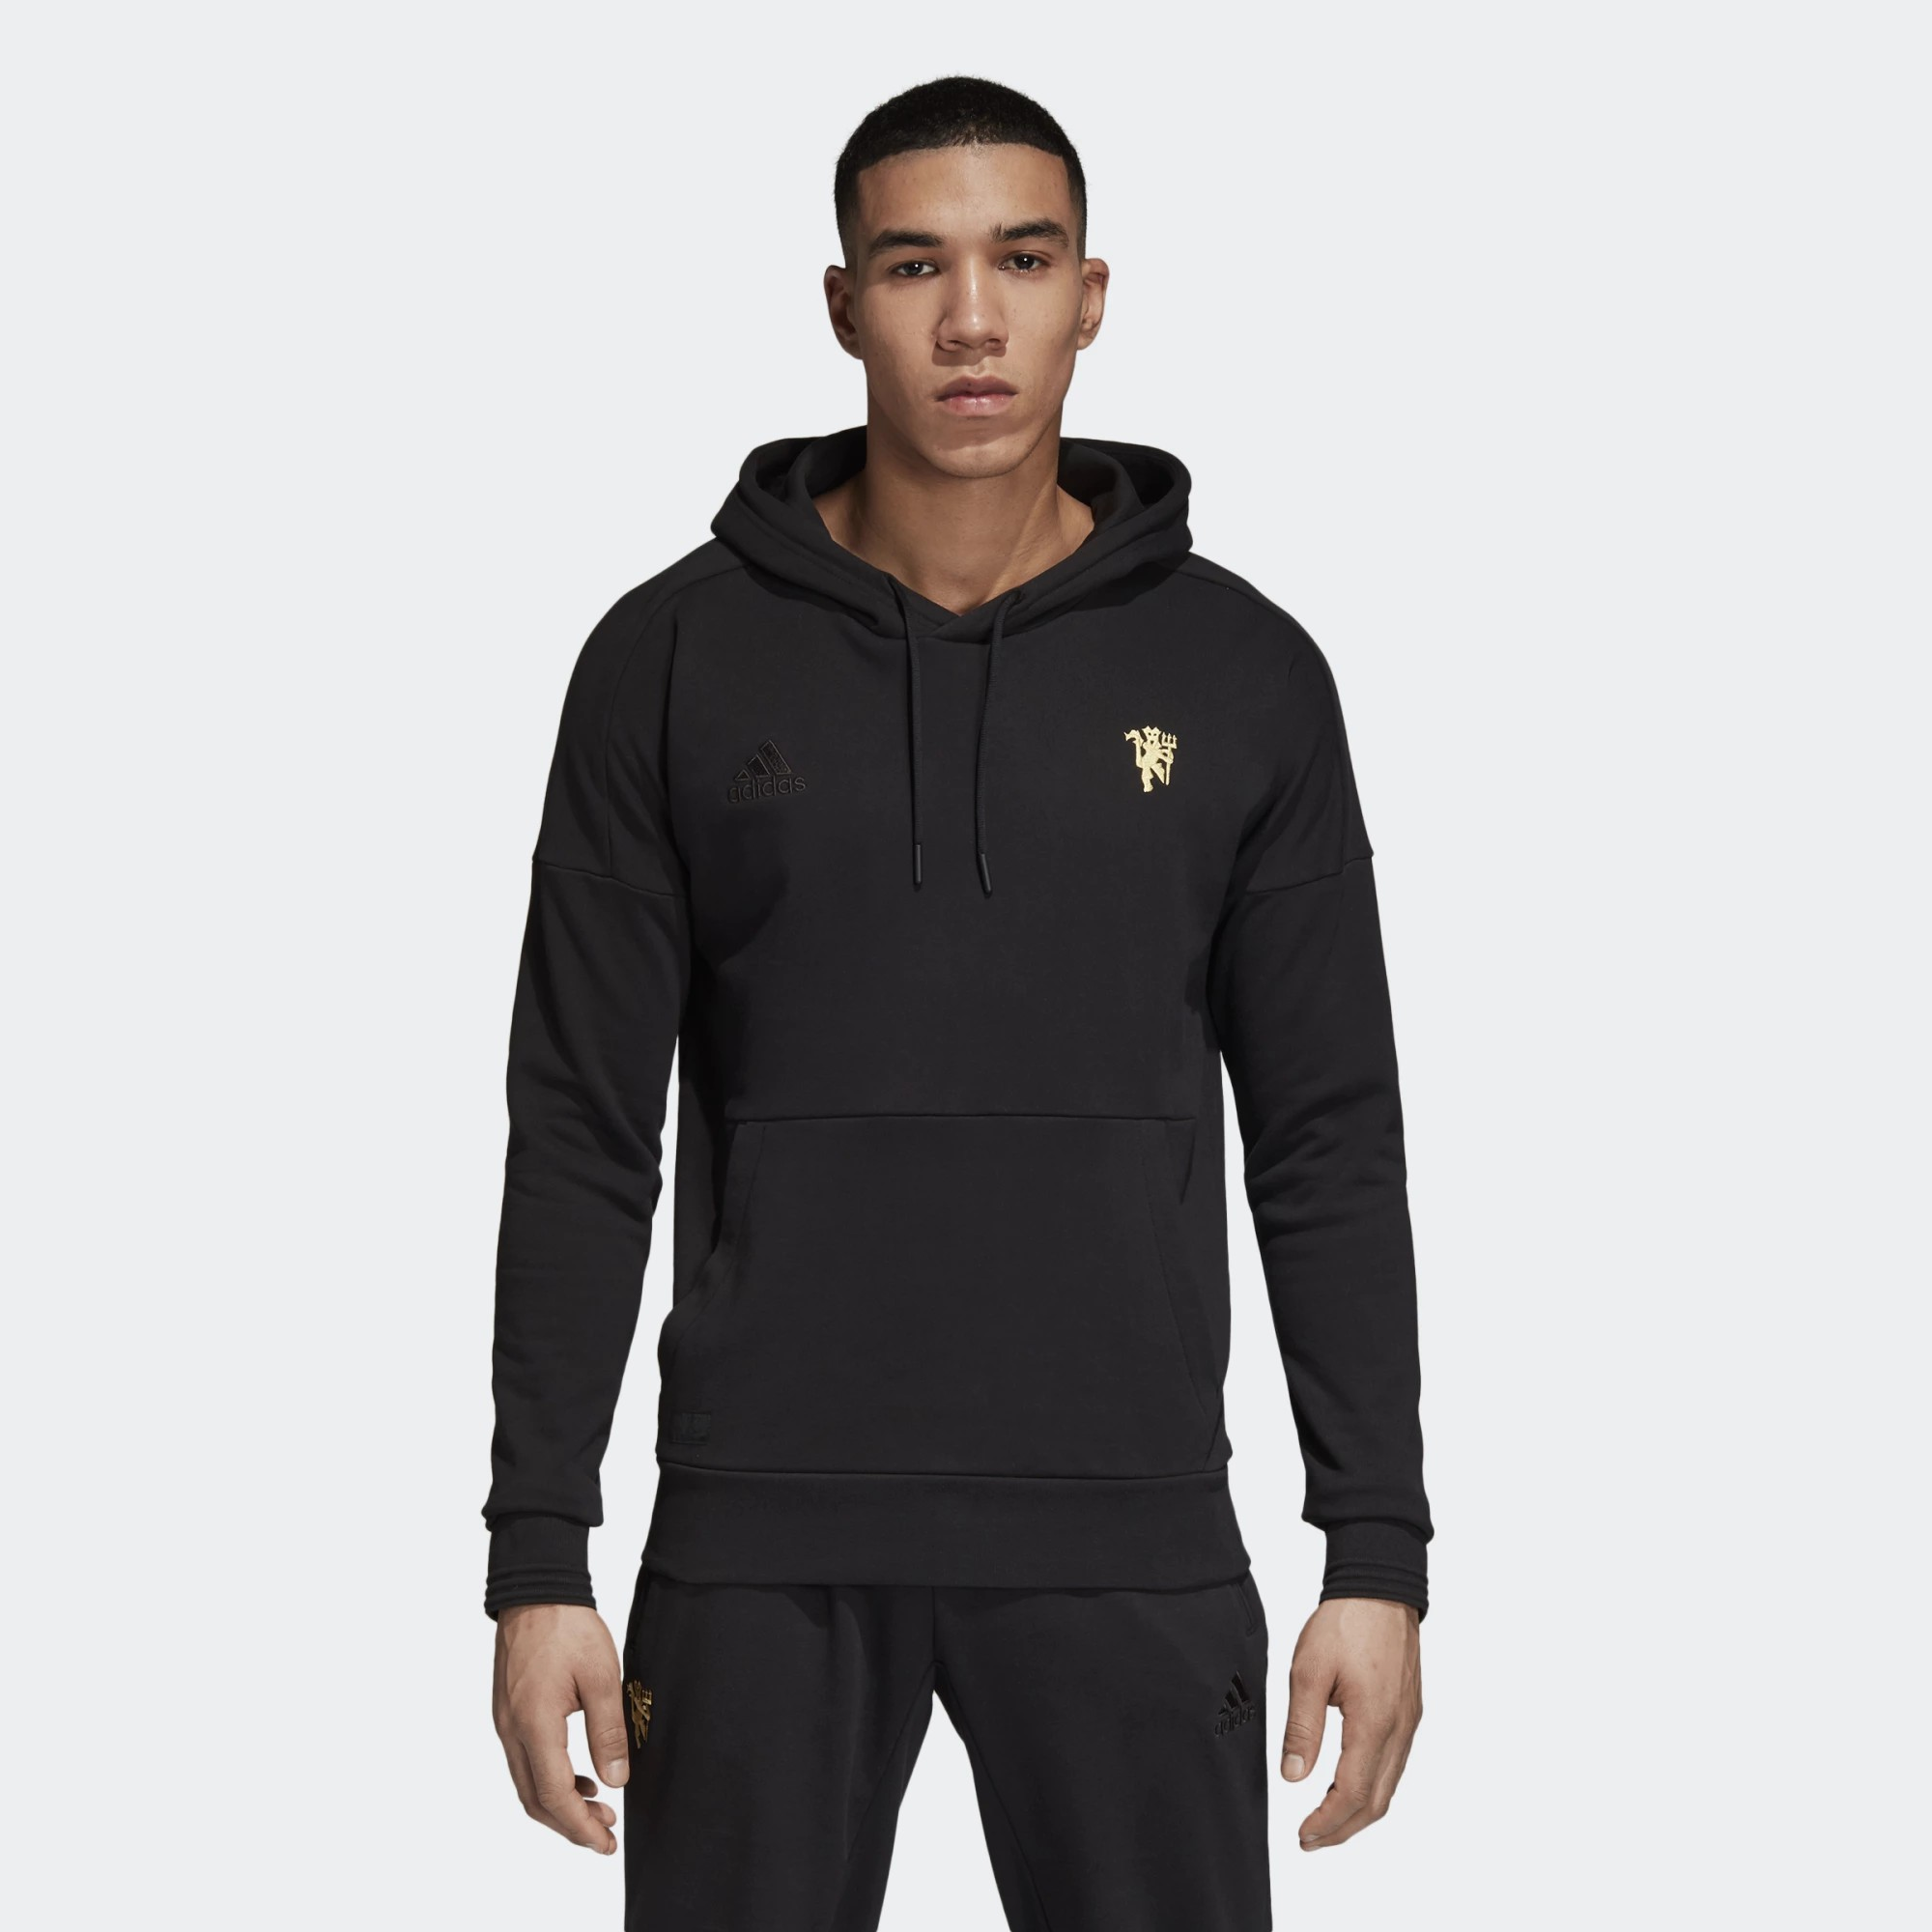 e68c8268e Click to enlarge image  adidas seasonal special manchester united hoodie black a.jpg ...